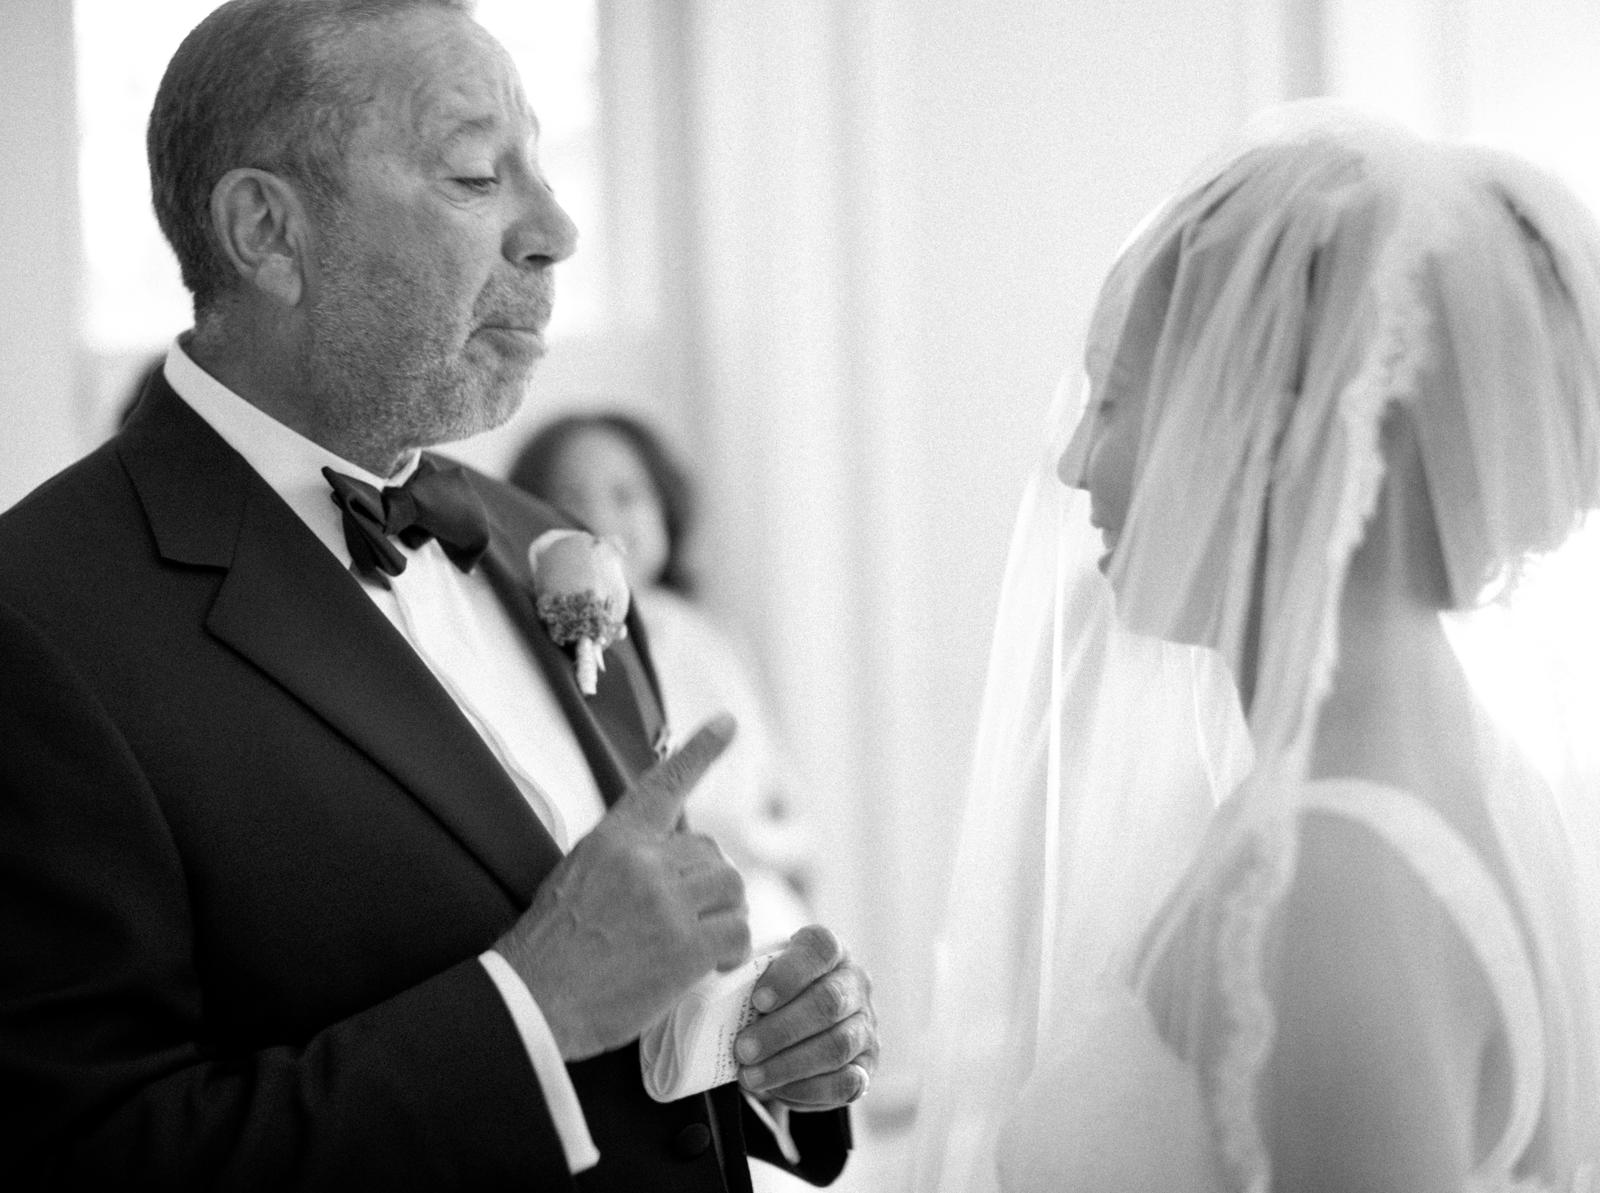 Wedding Photography | A bride and her father talk before the wedding.